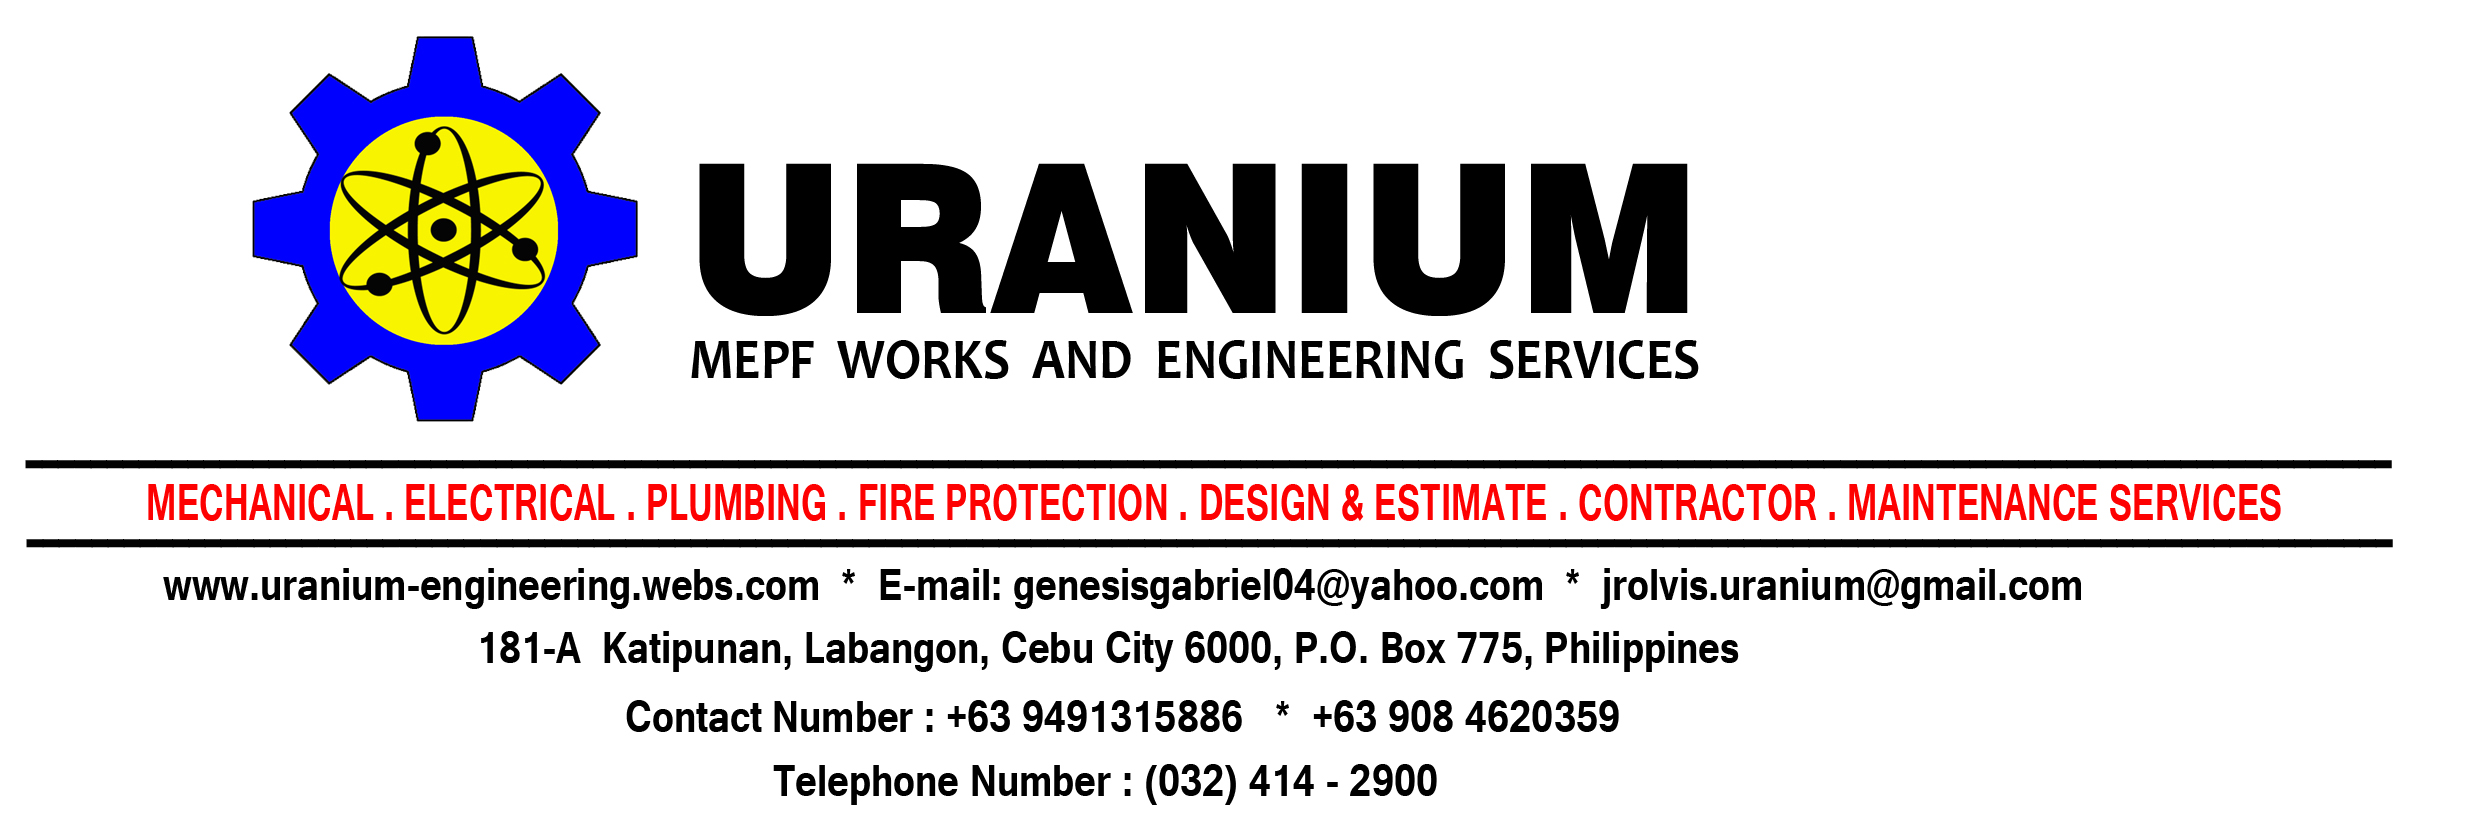 Uranium MEPF Works & Engineering Services